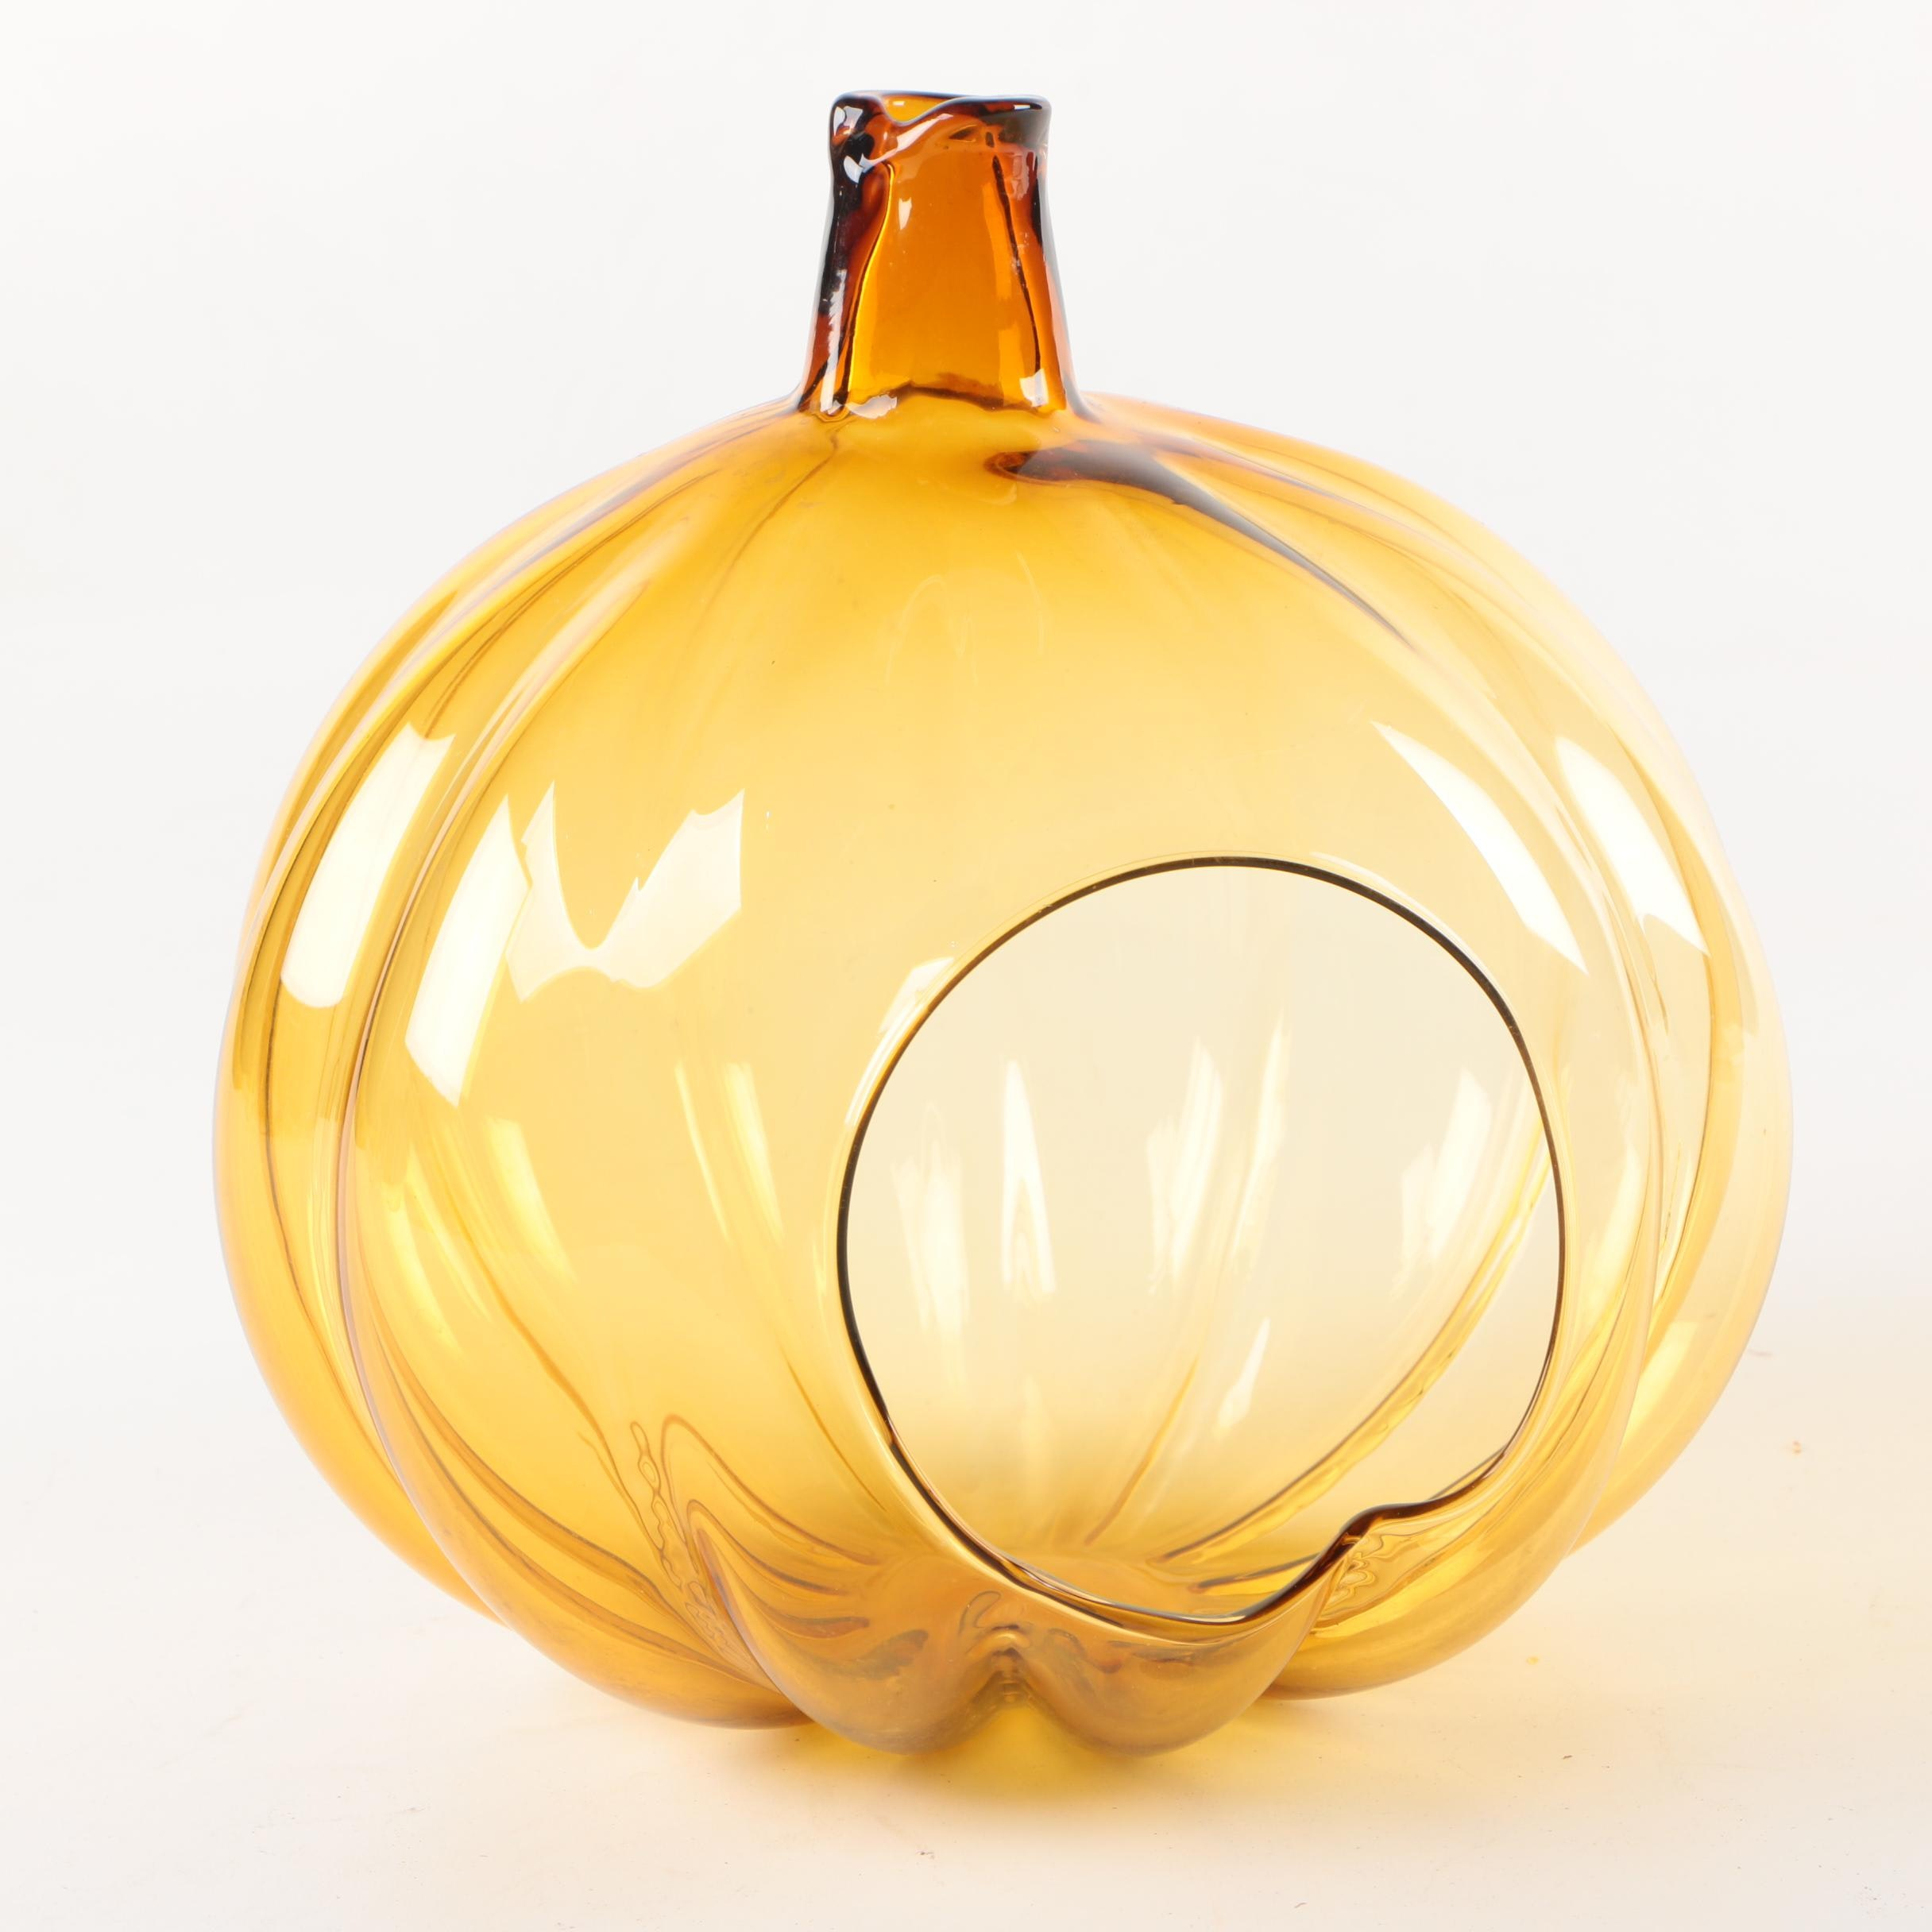 Glass Pumpkin Decor